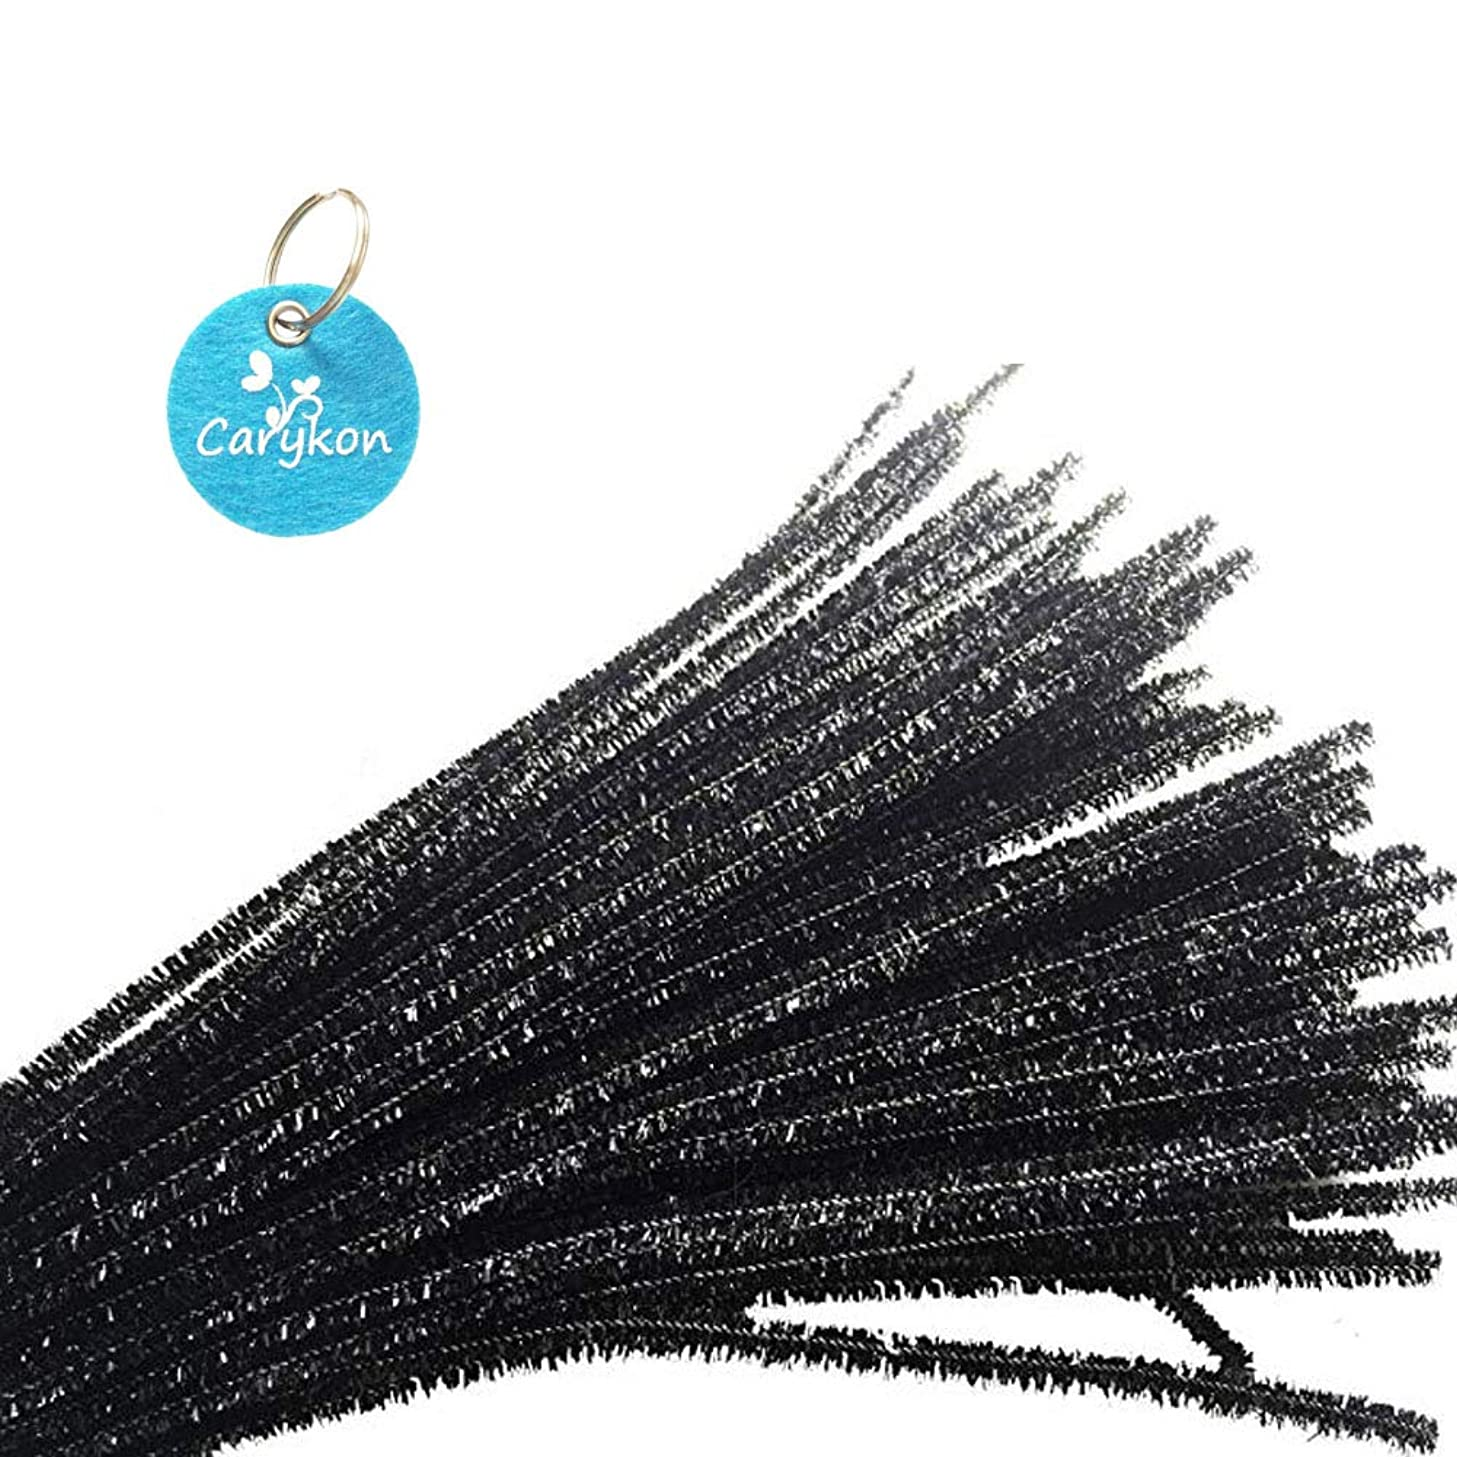 Caryko Tinsel Creative Arts Chenille Stems 6 mm x 12 Inch, Pack of 200 (Black)